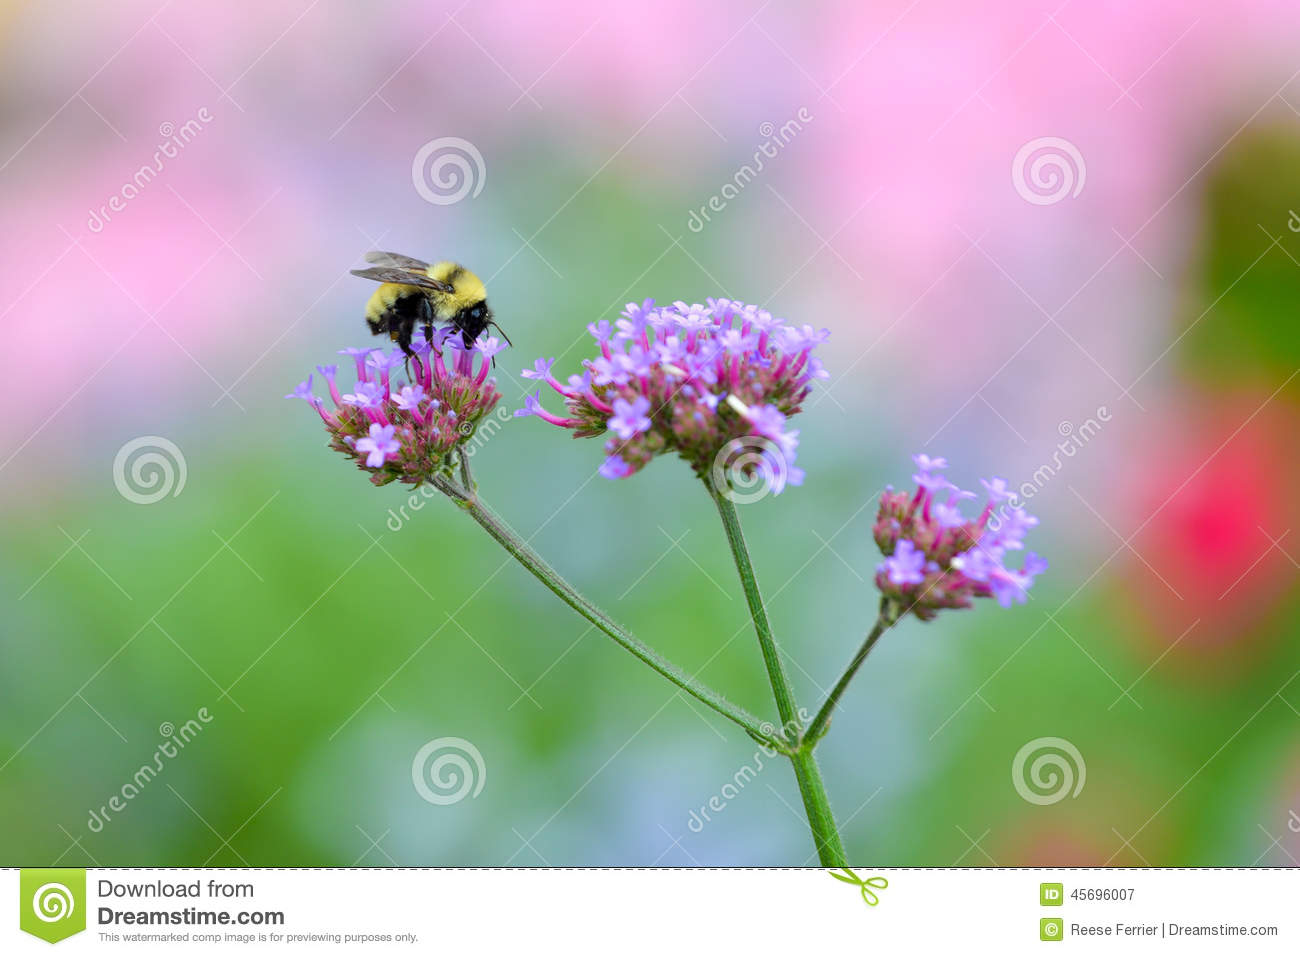 Buzzy Bee Stock Image Image Of Nature Insect Collecting